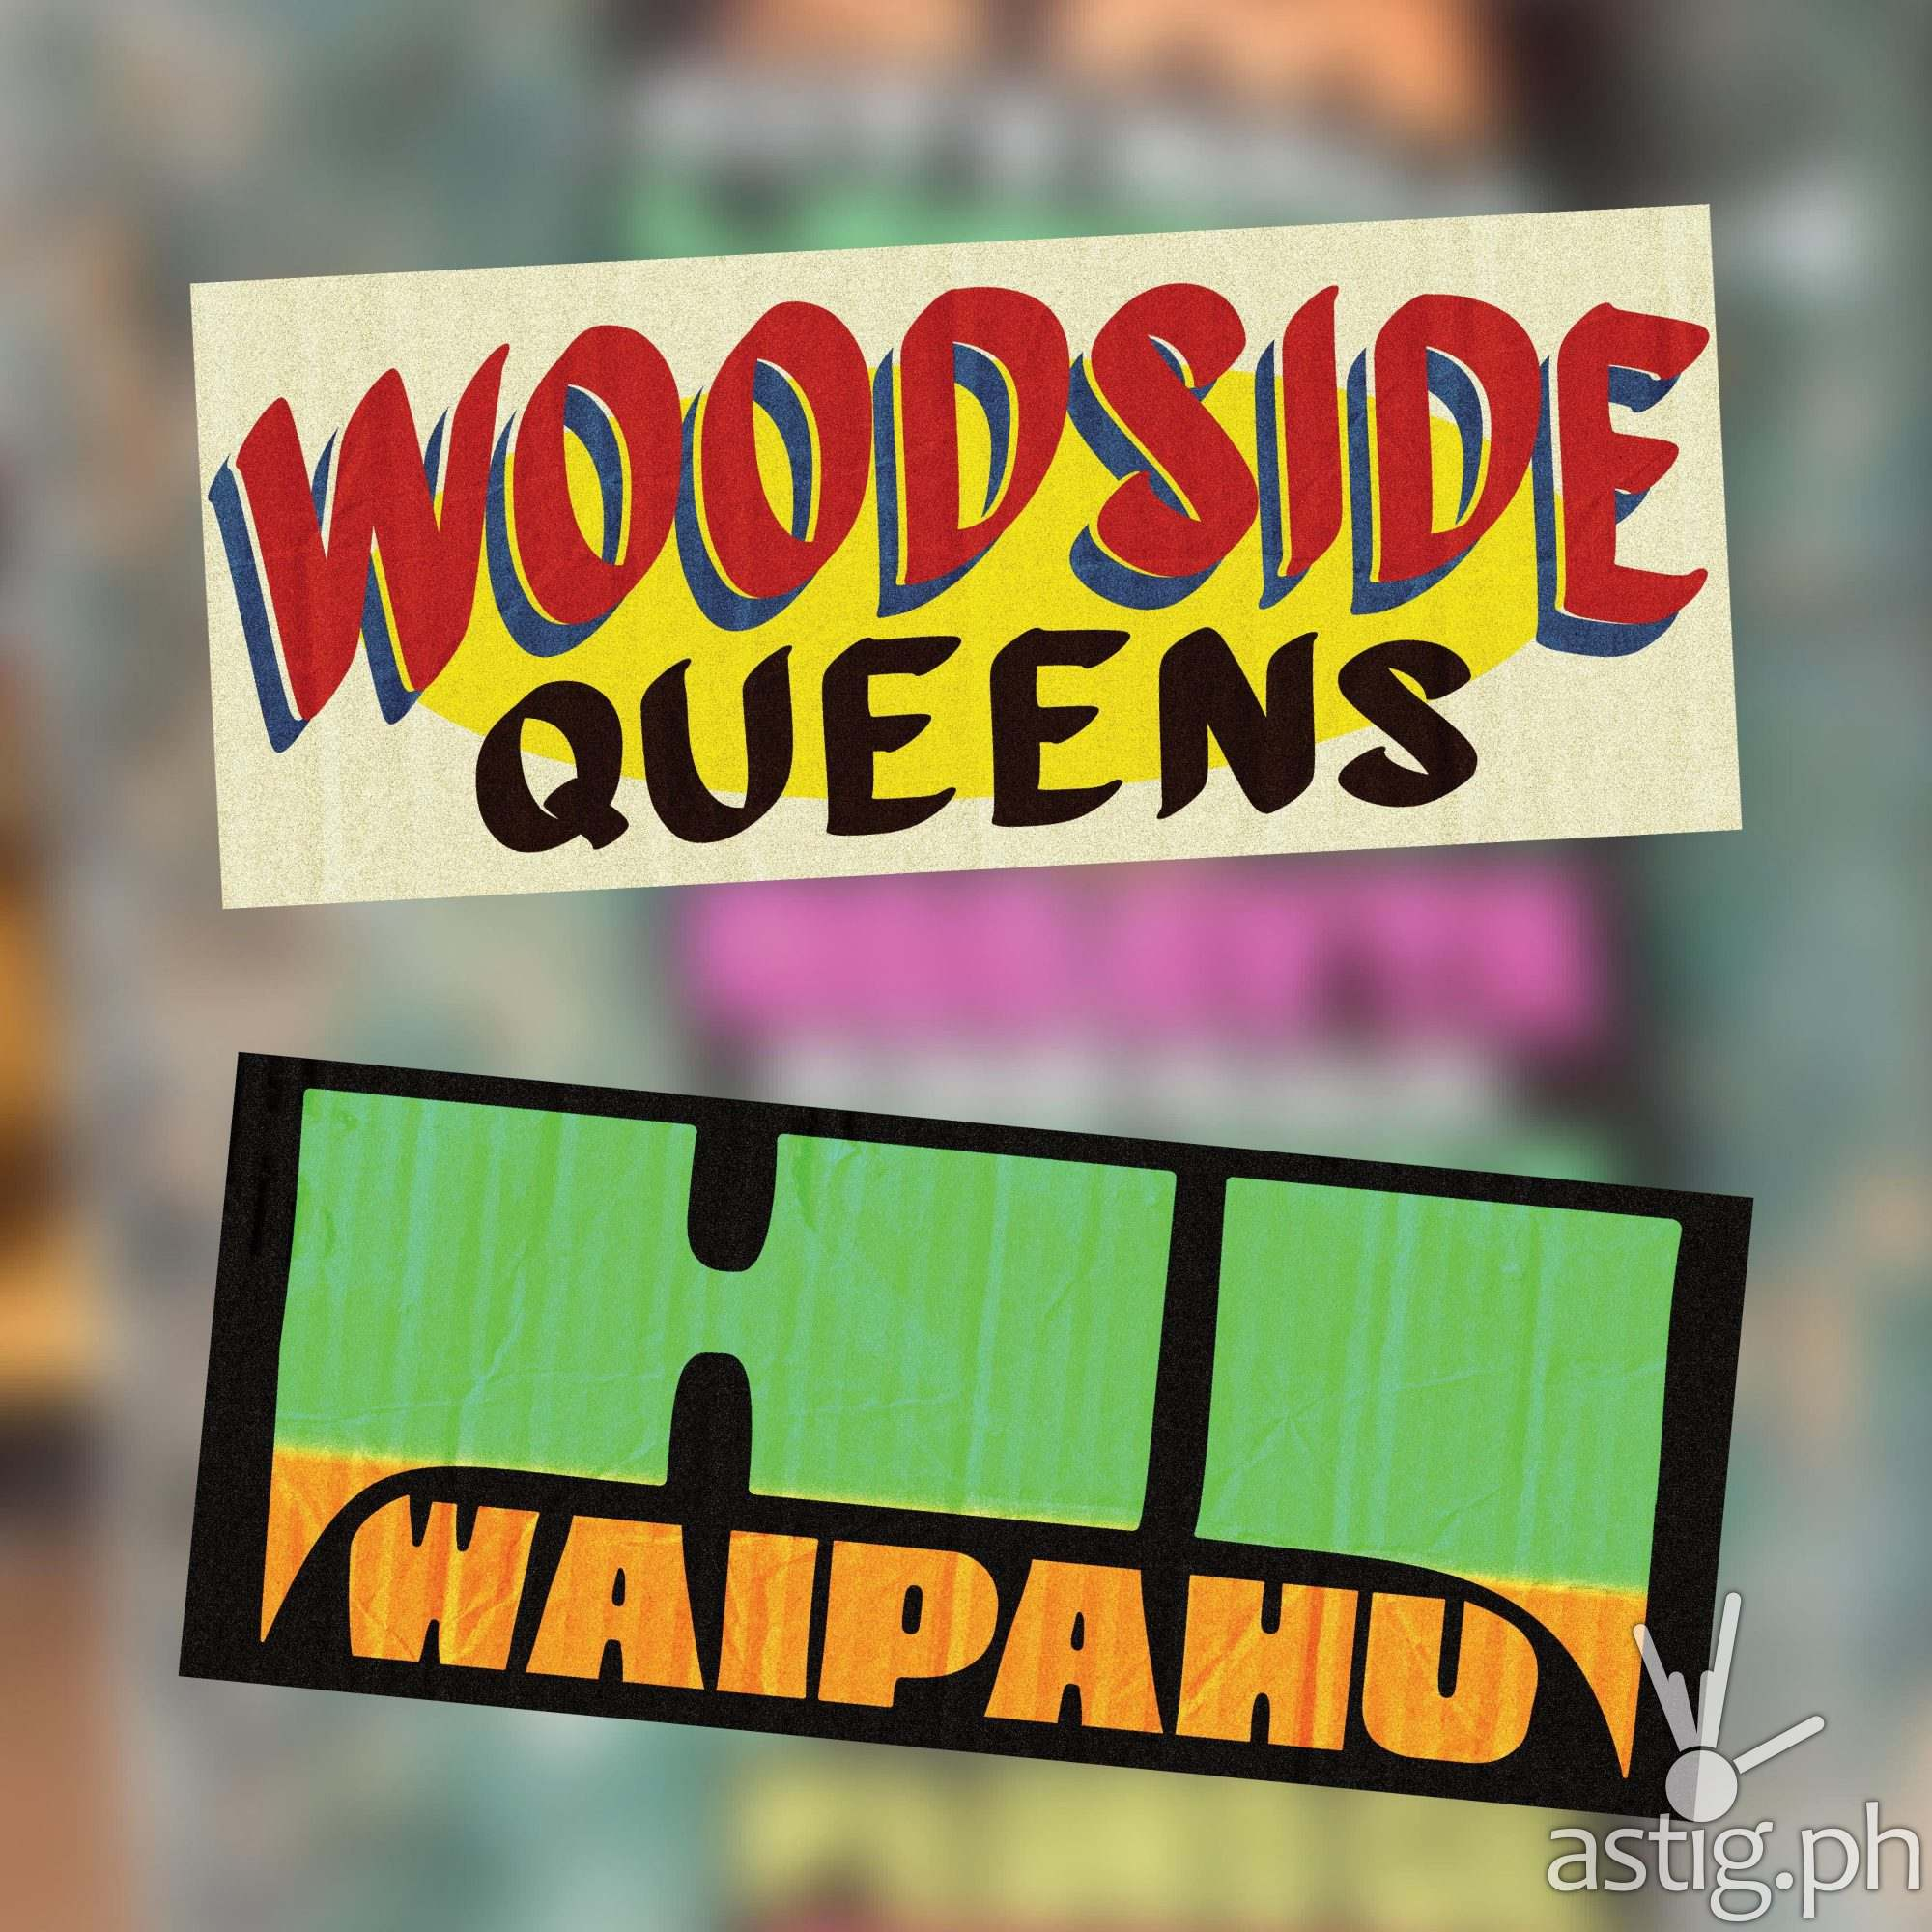 Woodside Queens, Waipahu Hawaii - US cities as jeepney signs from the Philippines by Zach Reyes